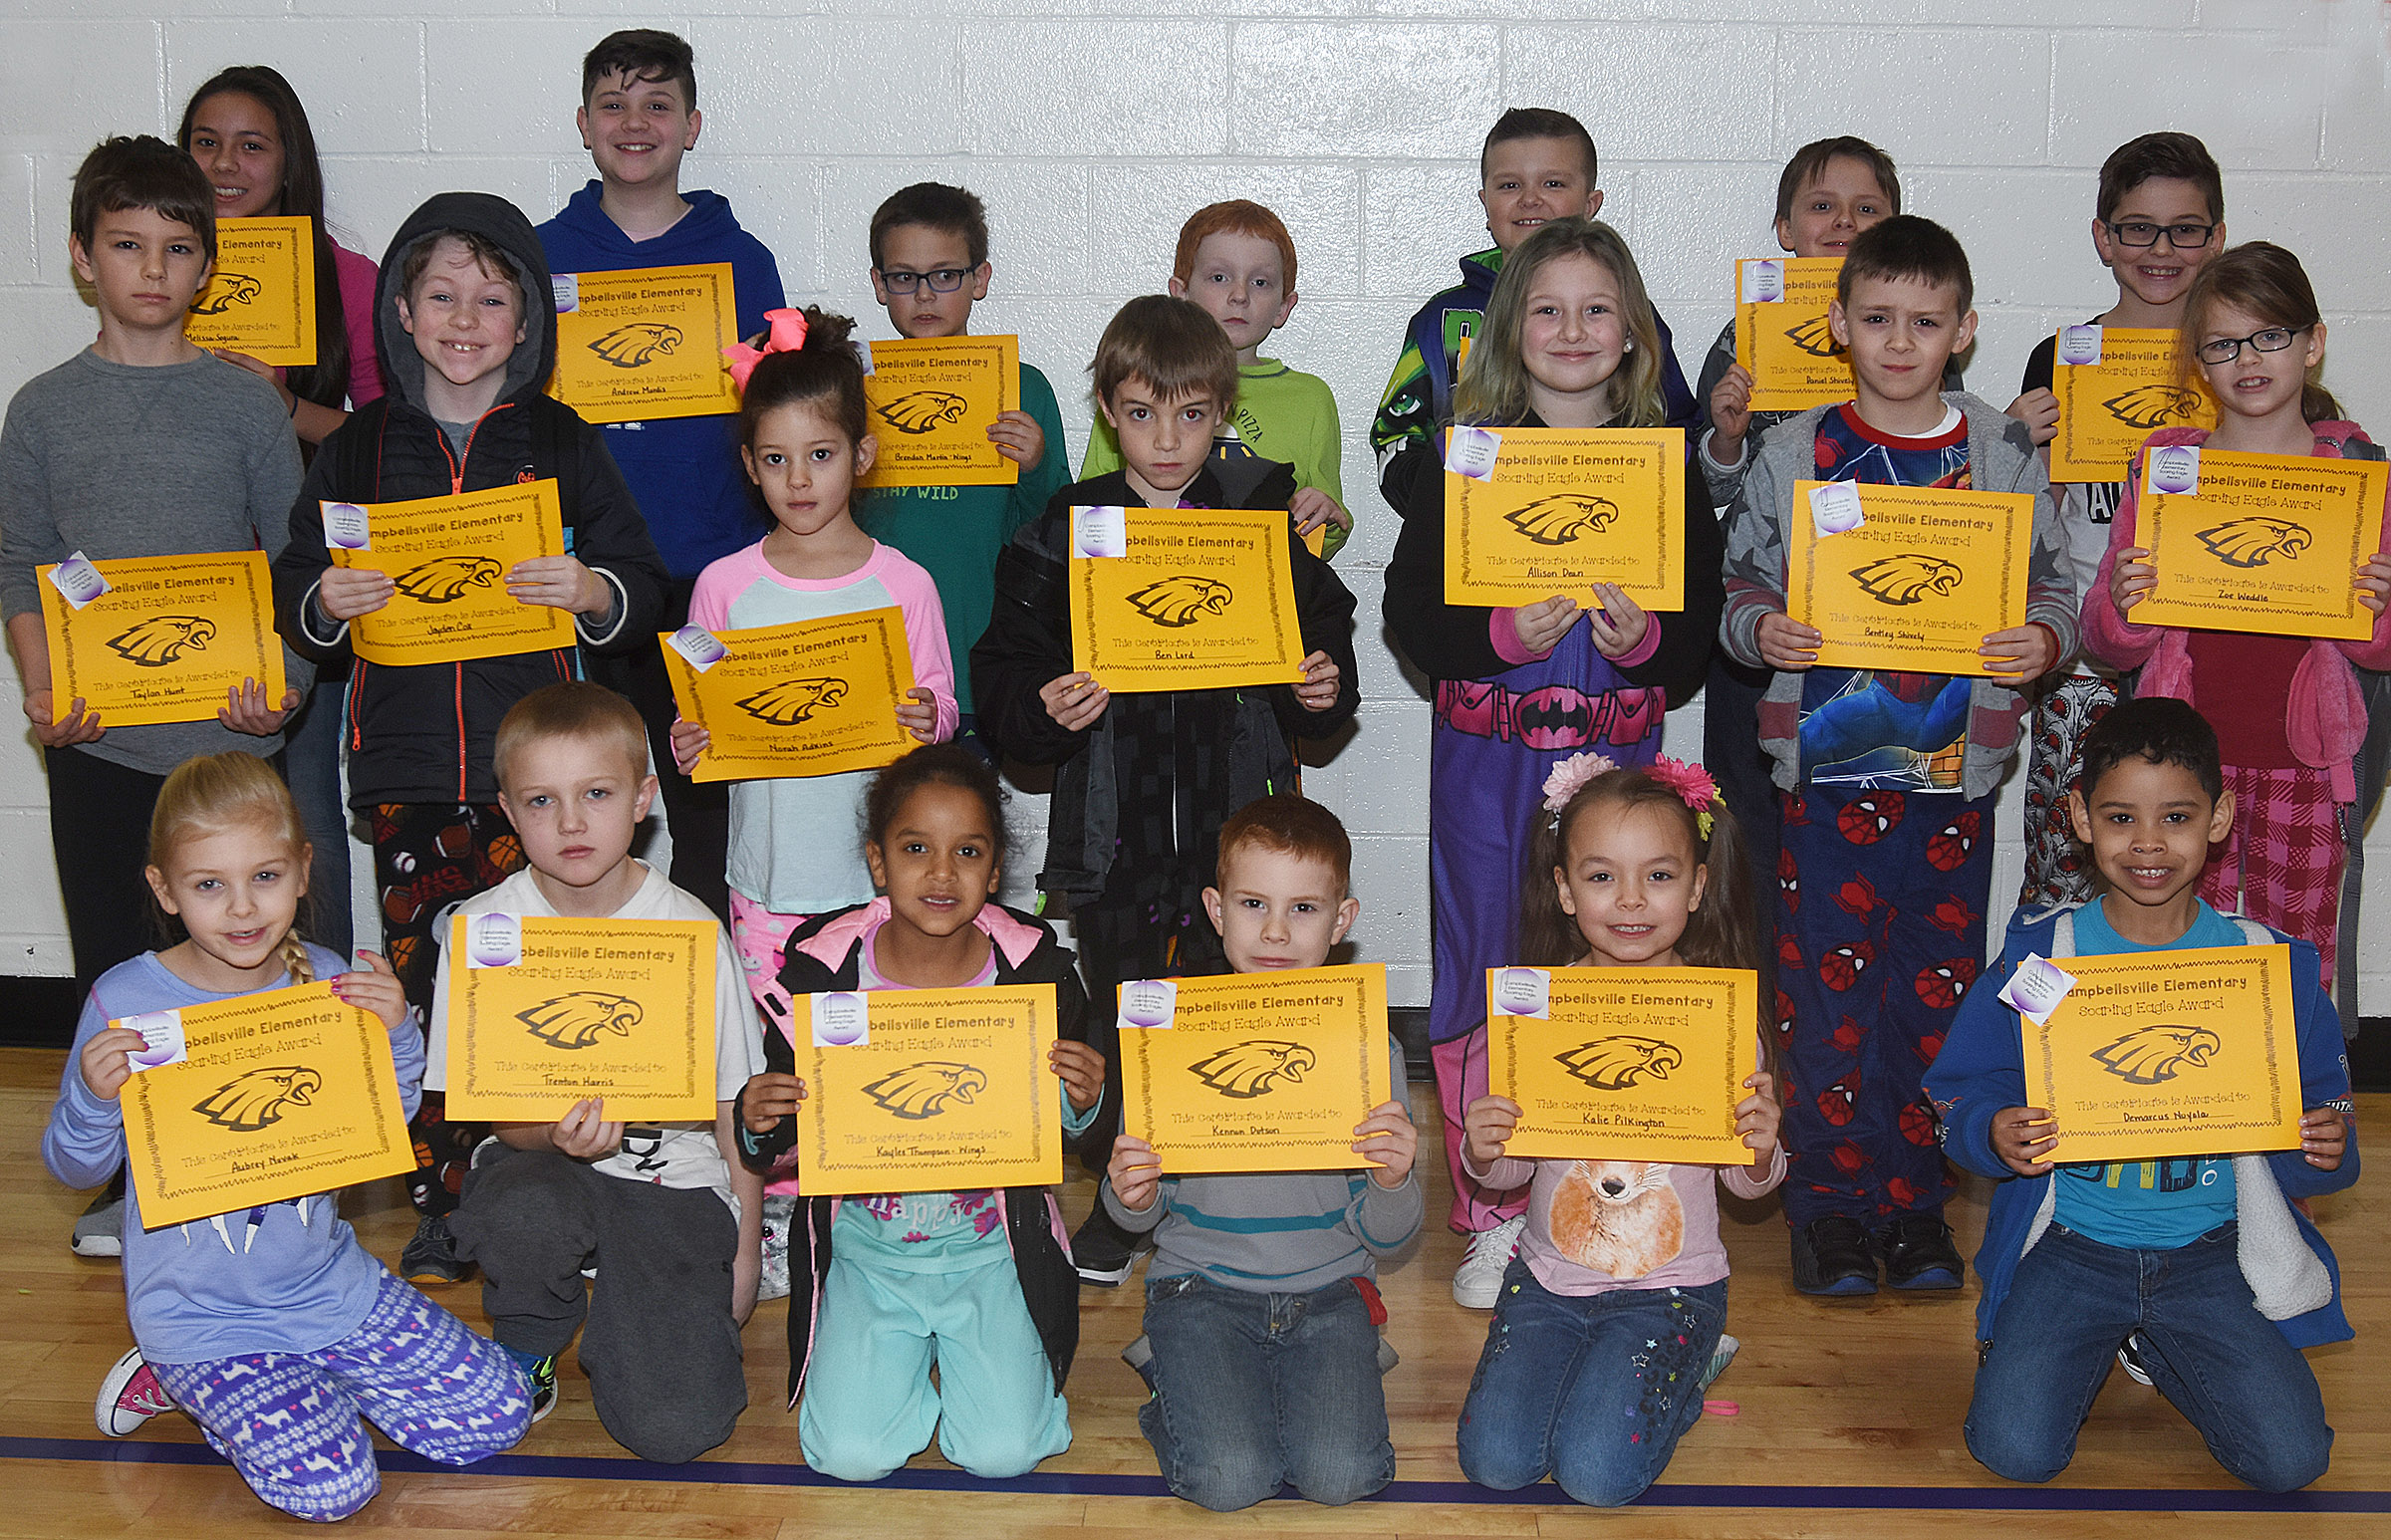 From left, front, are first-grader Aubrey Novak, third-grader Trenton Harris, first-grader Kaylee Thompson, kindergarteners Kennon Dotson and Kalie Pilkington and first-grader Demarcus Noyola. Second row, fifth-grader Taylan Hunt, second-grader Jayden Cox, kindergartener Norah Adkins, second-graders Ben Lord and Allison Dean and first-graders Bently Shively and Zoe Weddle. Back, fifth-graders Marissa Segura and Andrew Mardis, second-grader Brendan Martin, first-grader Gavin Martin, third-grader Cayton Lawhorn, fourth-grader Daniel Shively and third-grader Tye Rhodes. Absent from the photo is fourth-grader Kailei Hernandez.